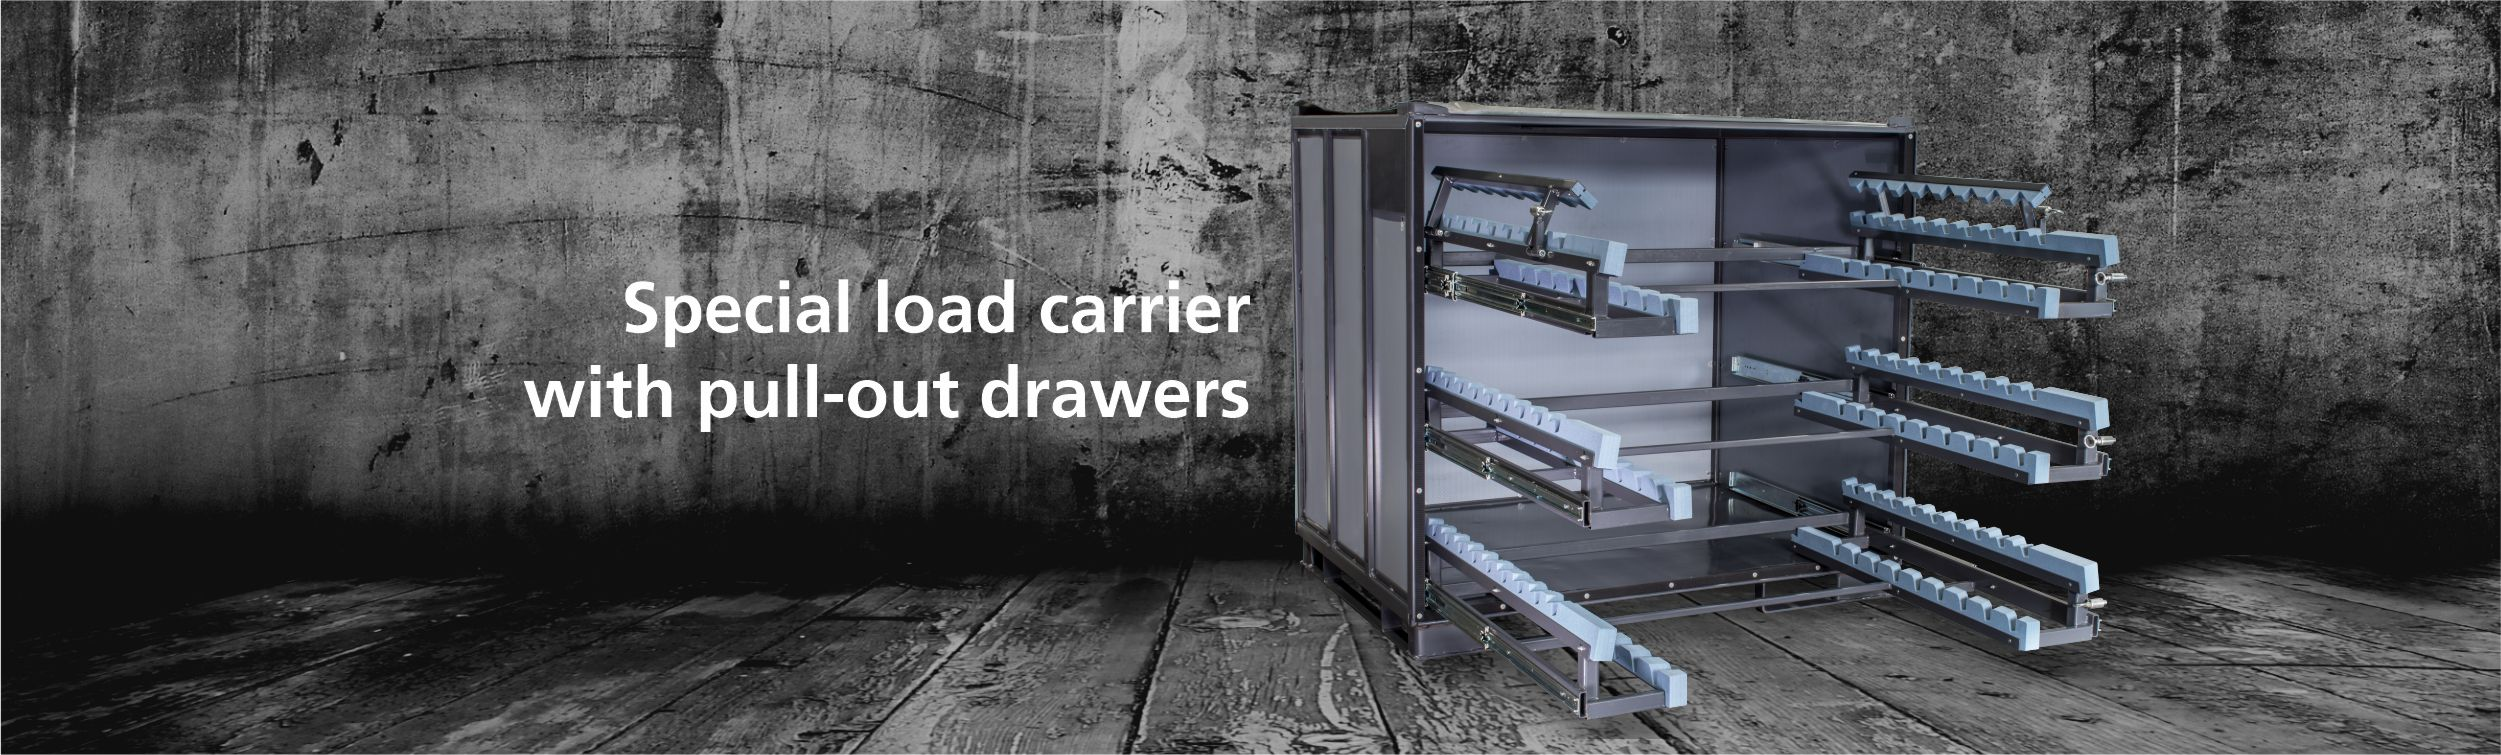 special_load_carrier_pull_out_drawers